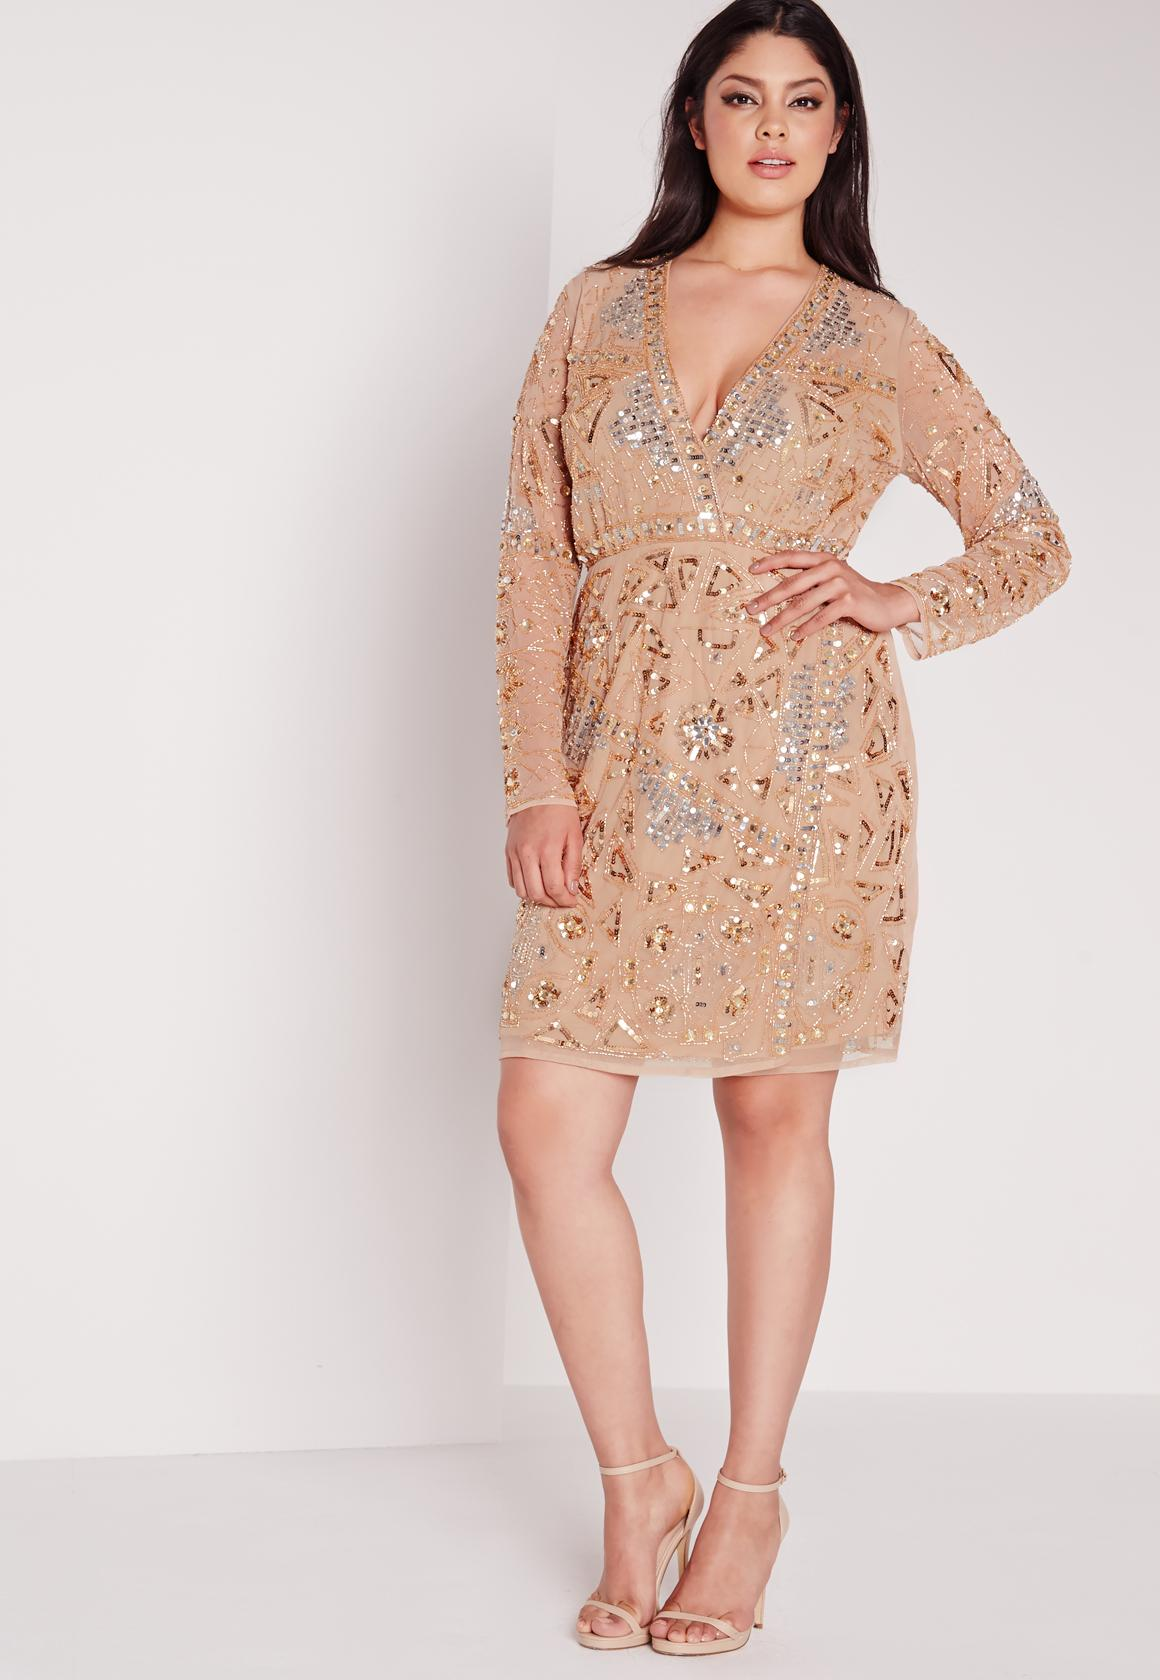 Plus Size Premium Embellished Dress Gold | Missguided